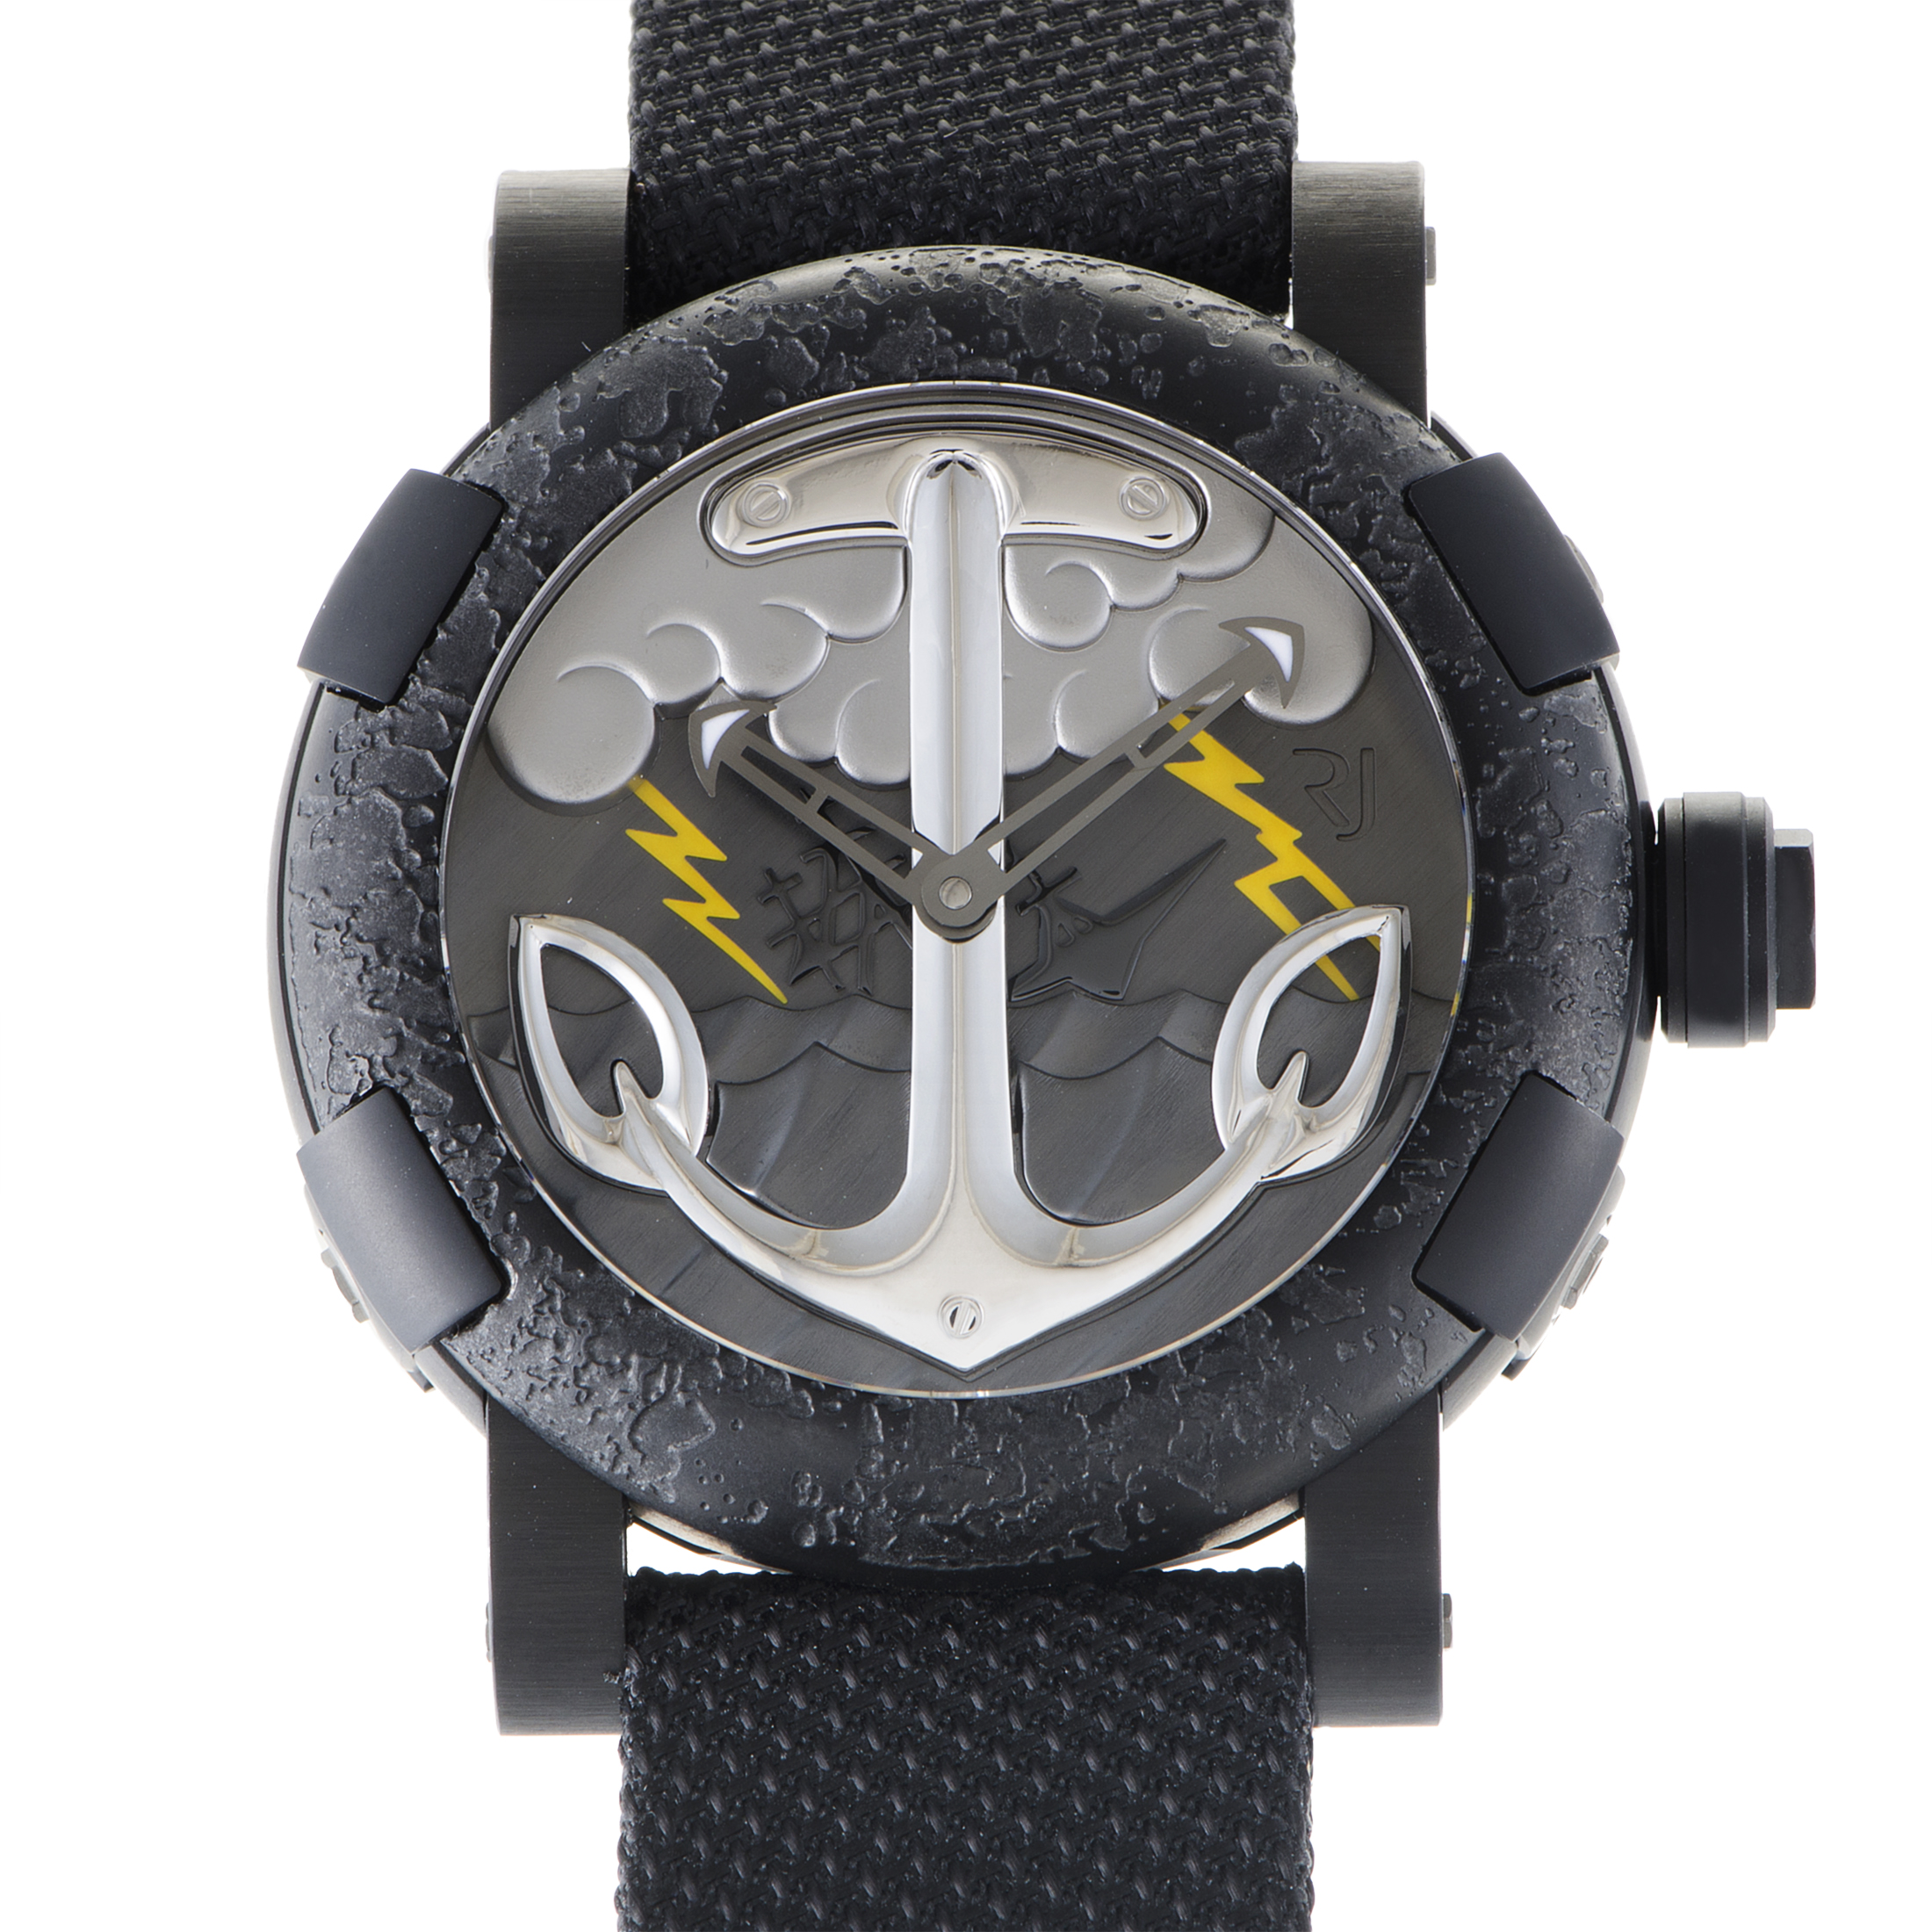 TATTOO BLACK YELLOW Mens Automatic Watch RJ.T.AU.TT.002.01